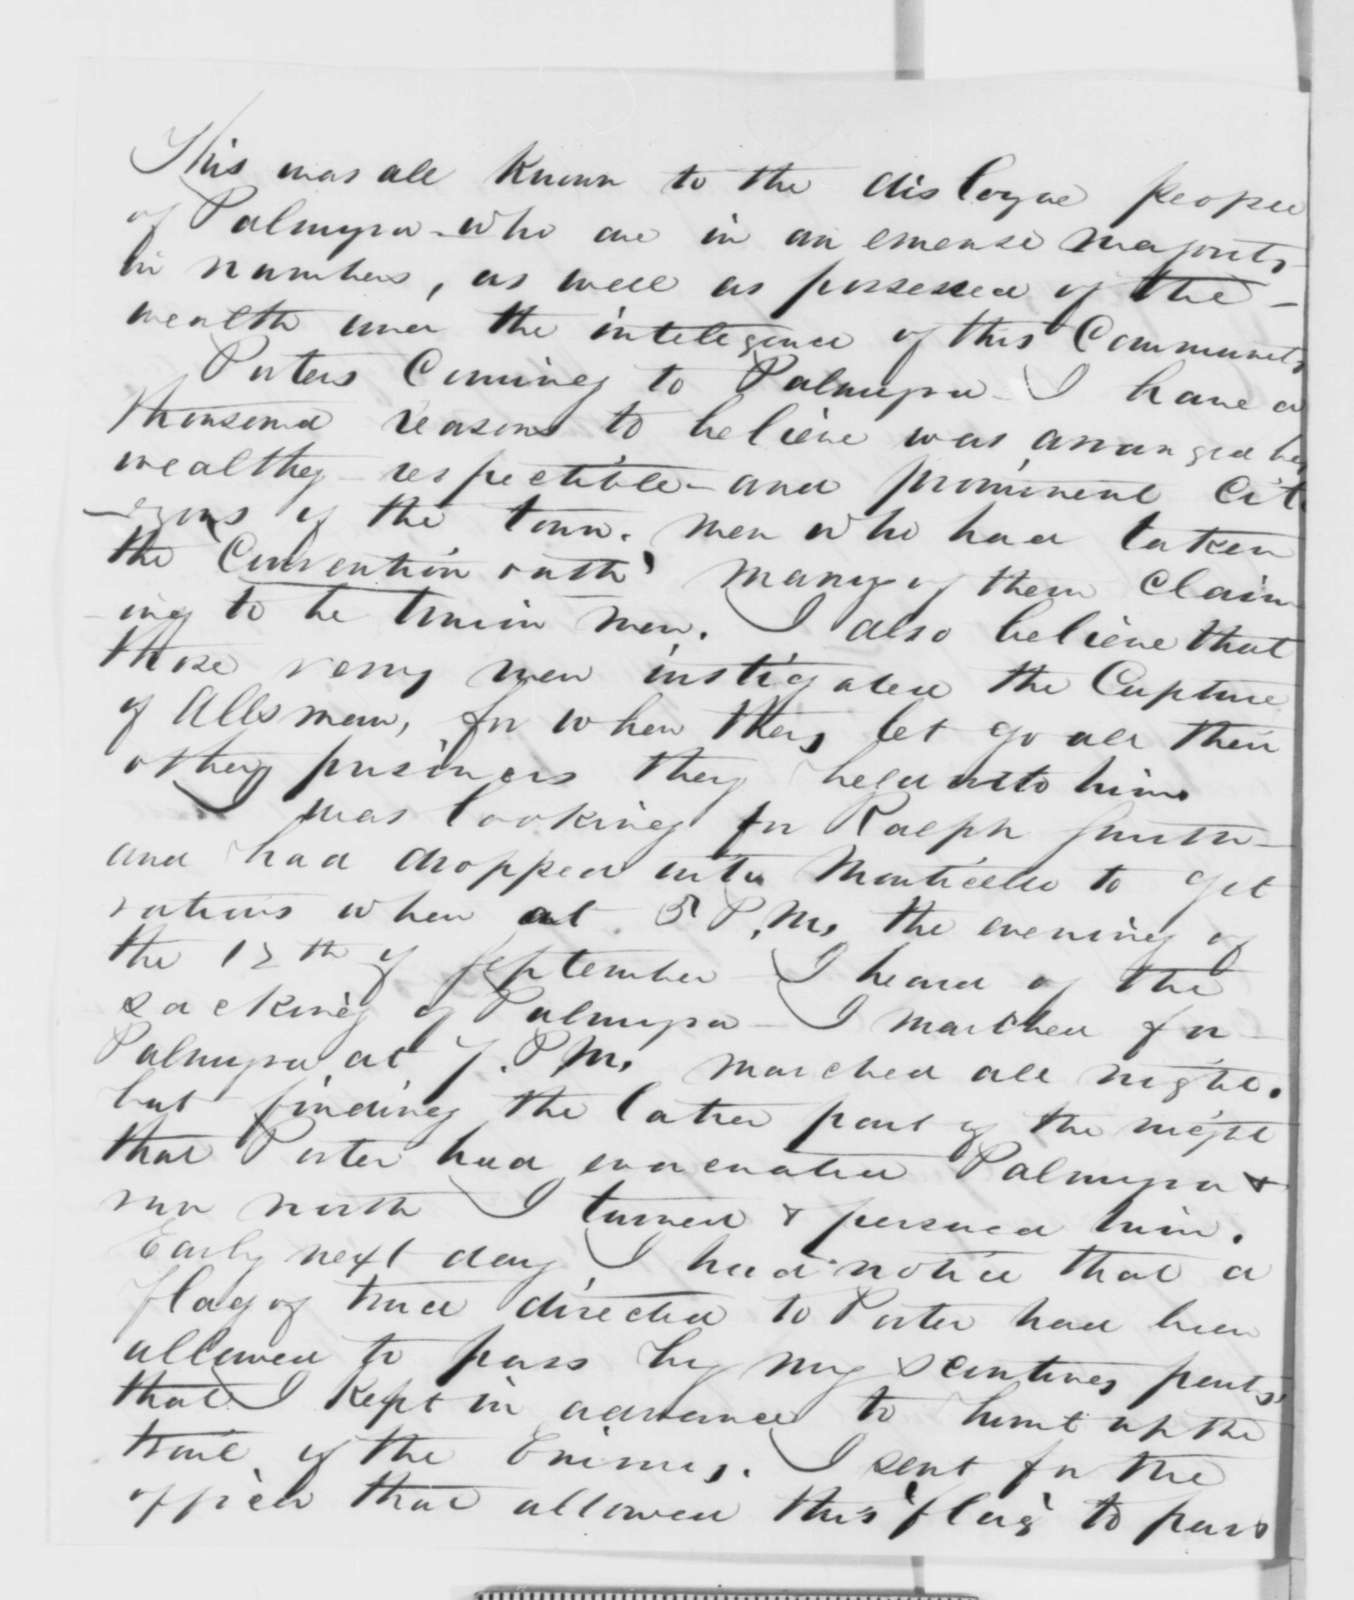 John McNeil to Samuel R. Curtis, Friday, December 12, 1862  (Affairs in Missouri)